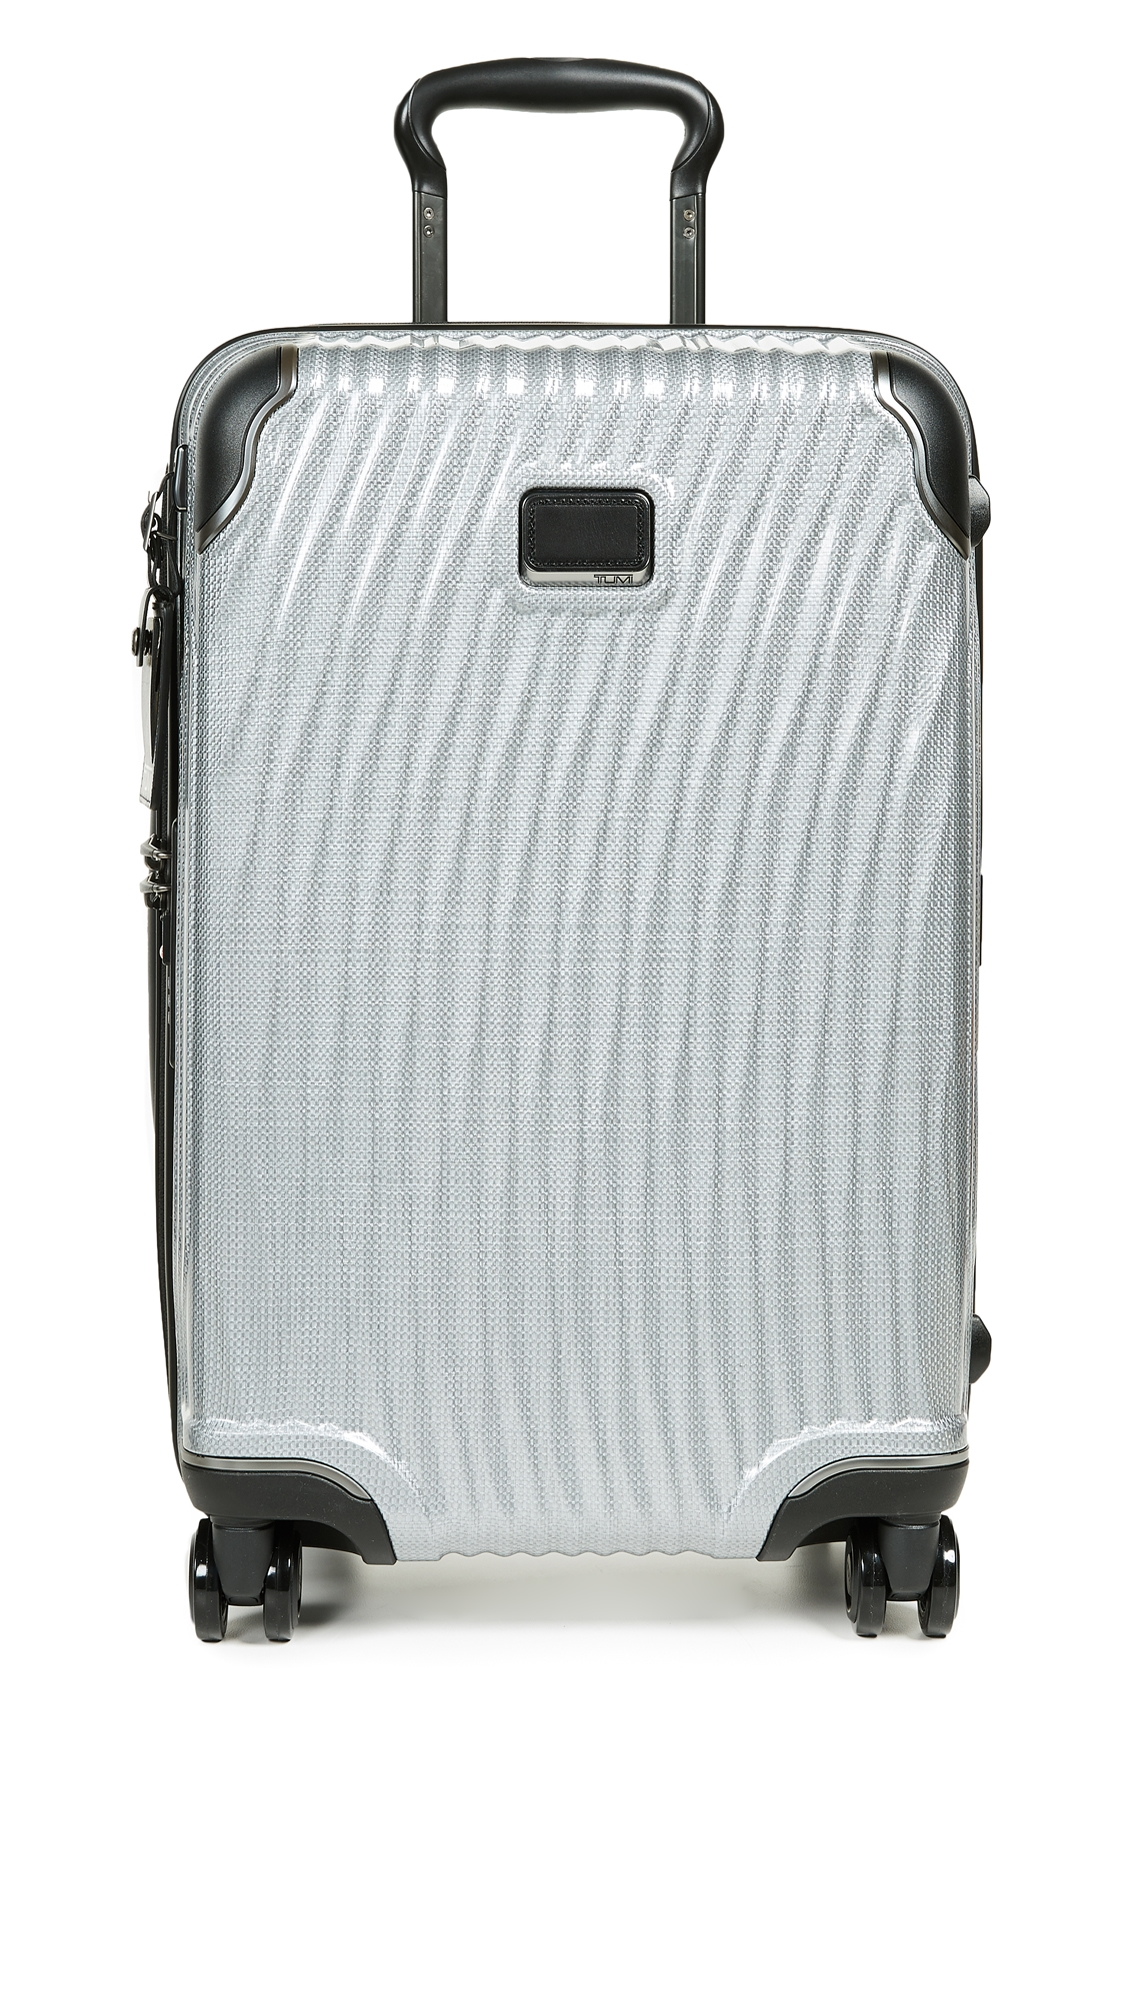 Latitude International Carry On Suitcase, Silver from EAST DANE